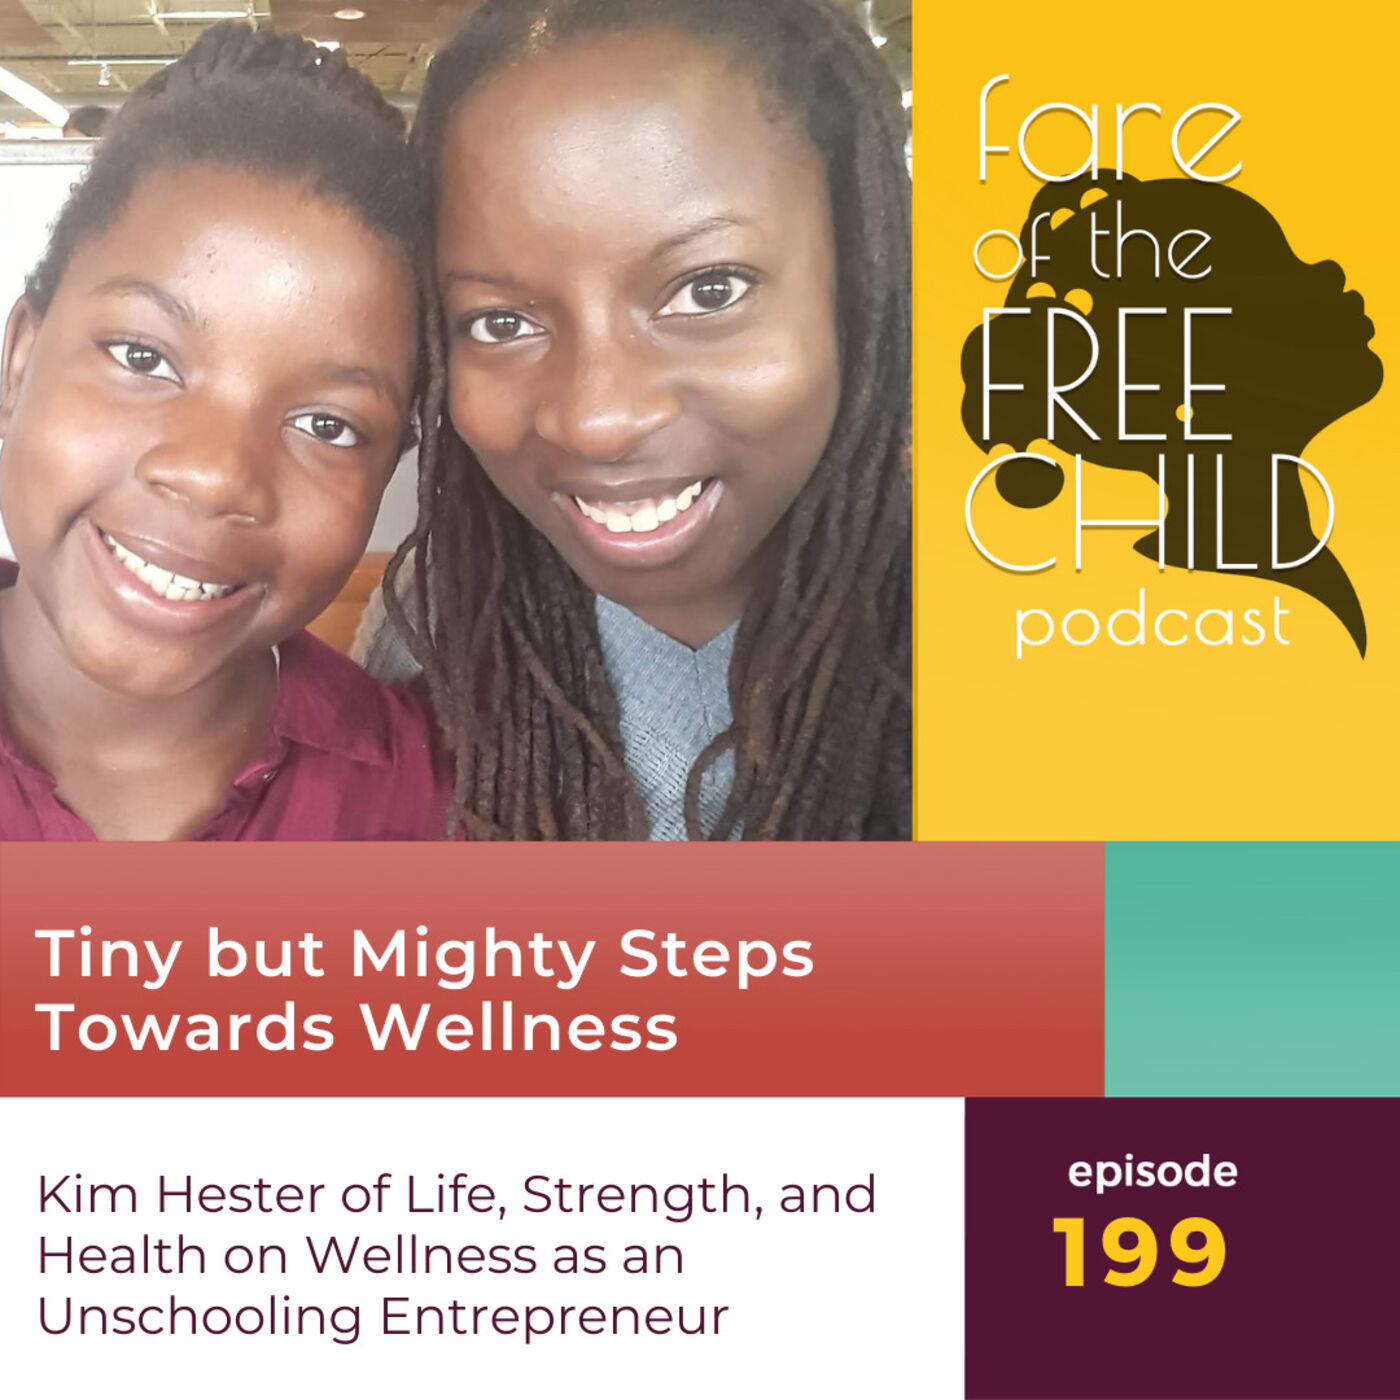 Ep 199: Tiny but Mighty Steps Towards Wellness Kim Hester of Life, Strength, and Health on Wellness as an Unschooling Entrepreneur